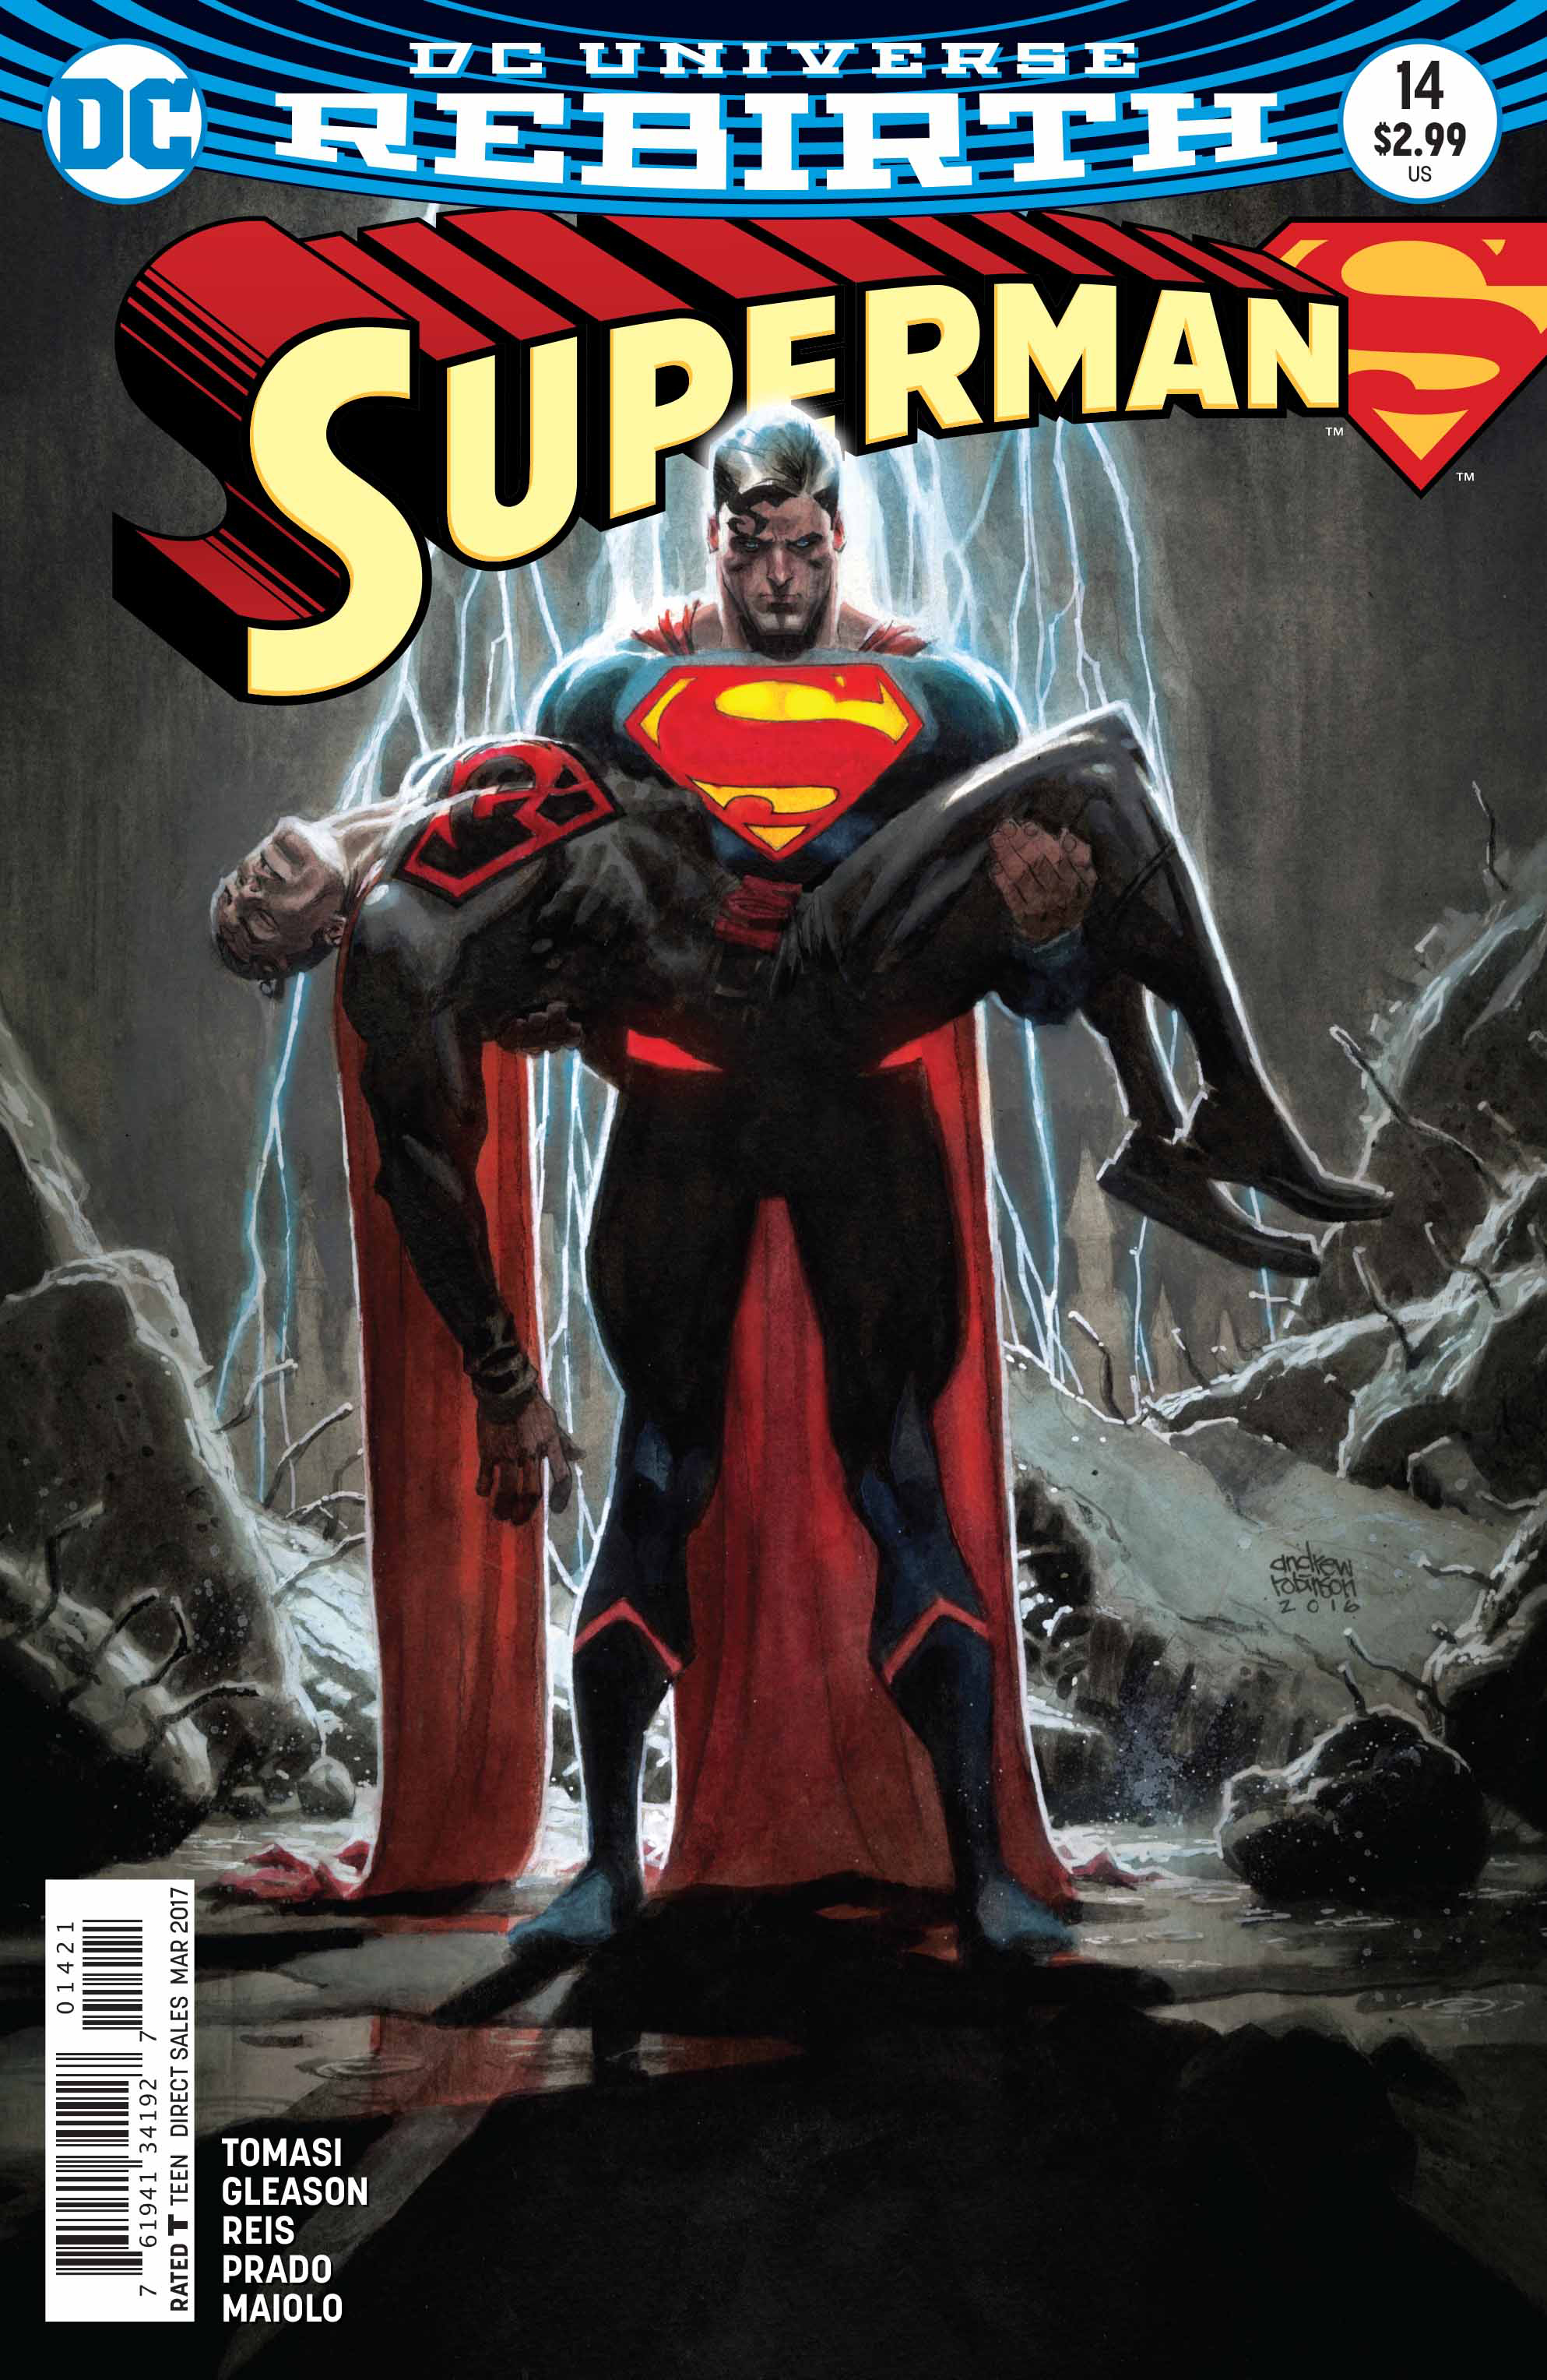 SUPERMAN #14 VAR ED